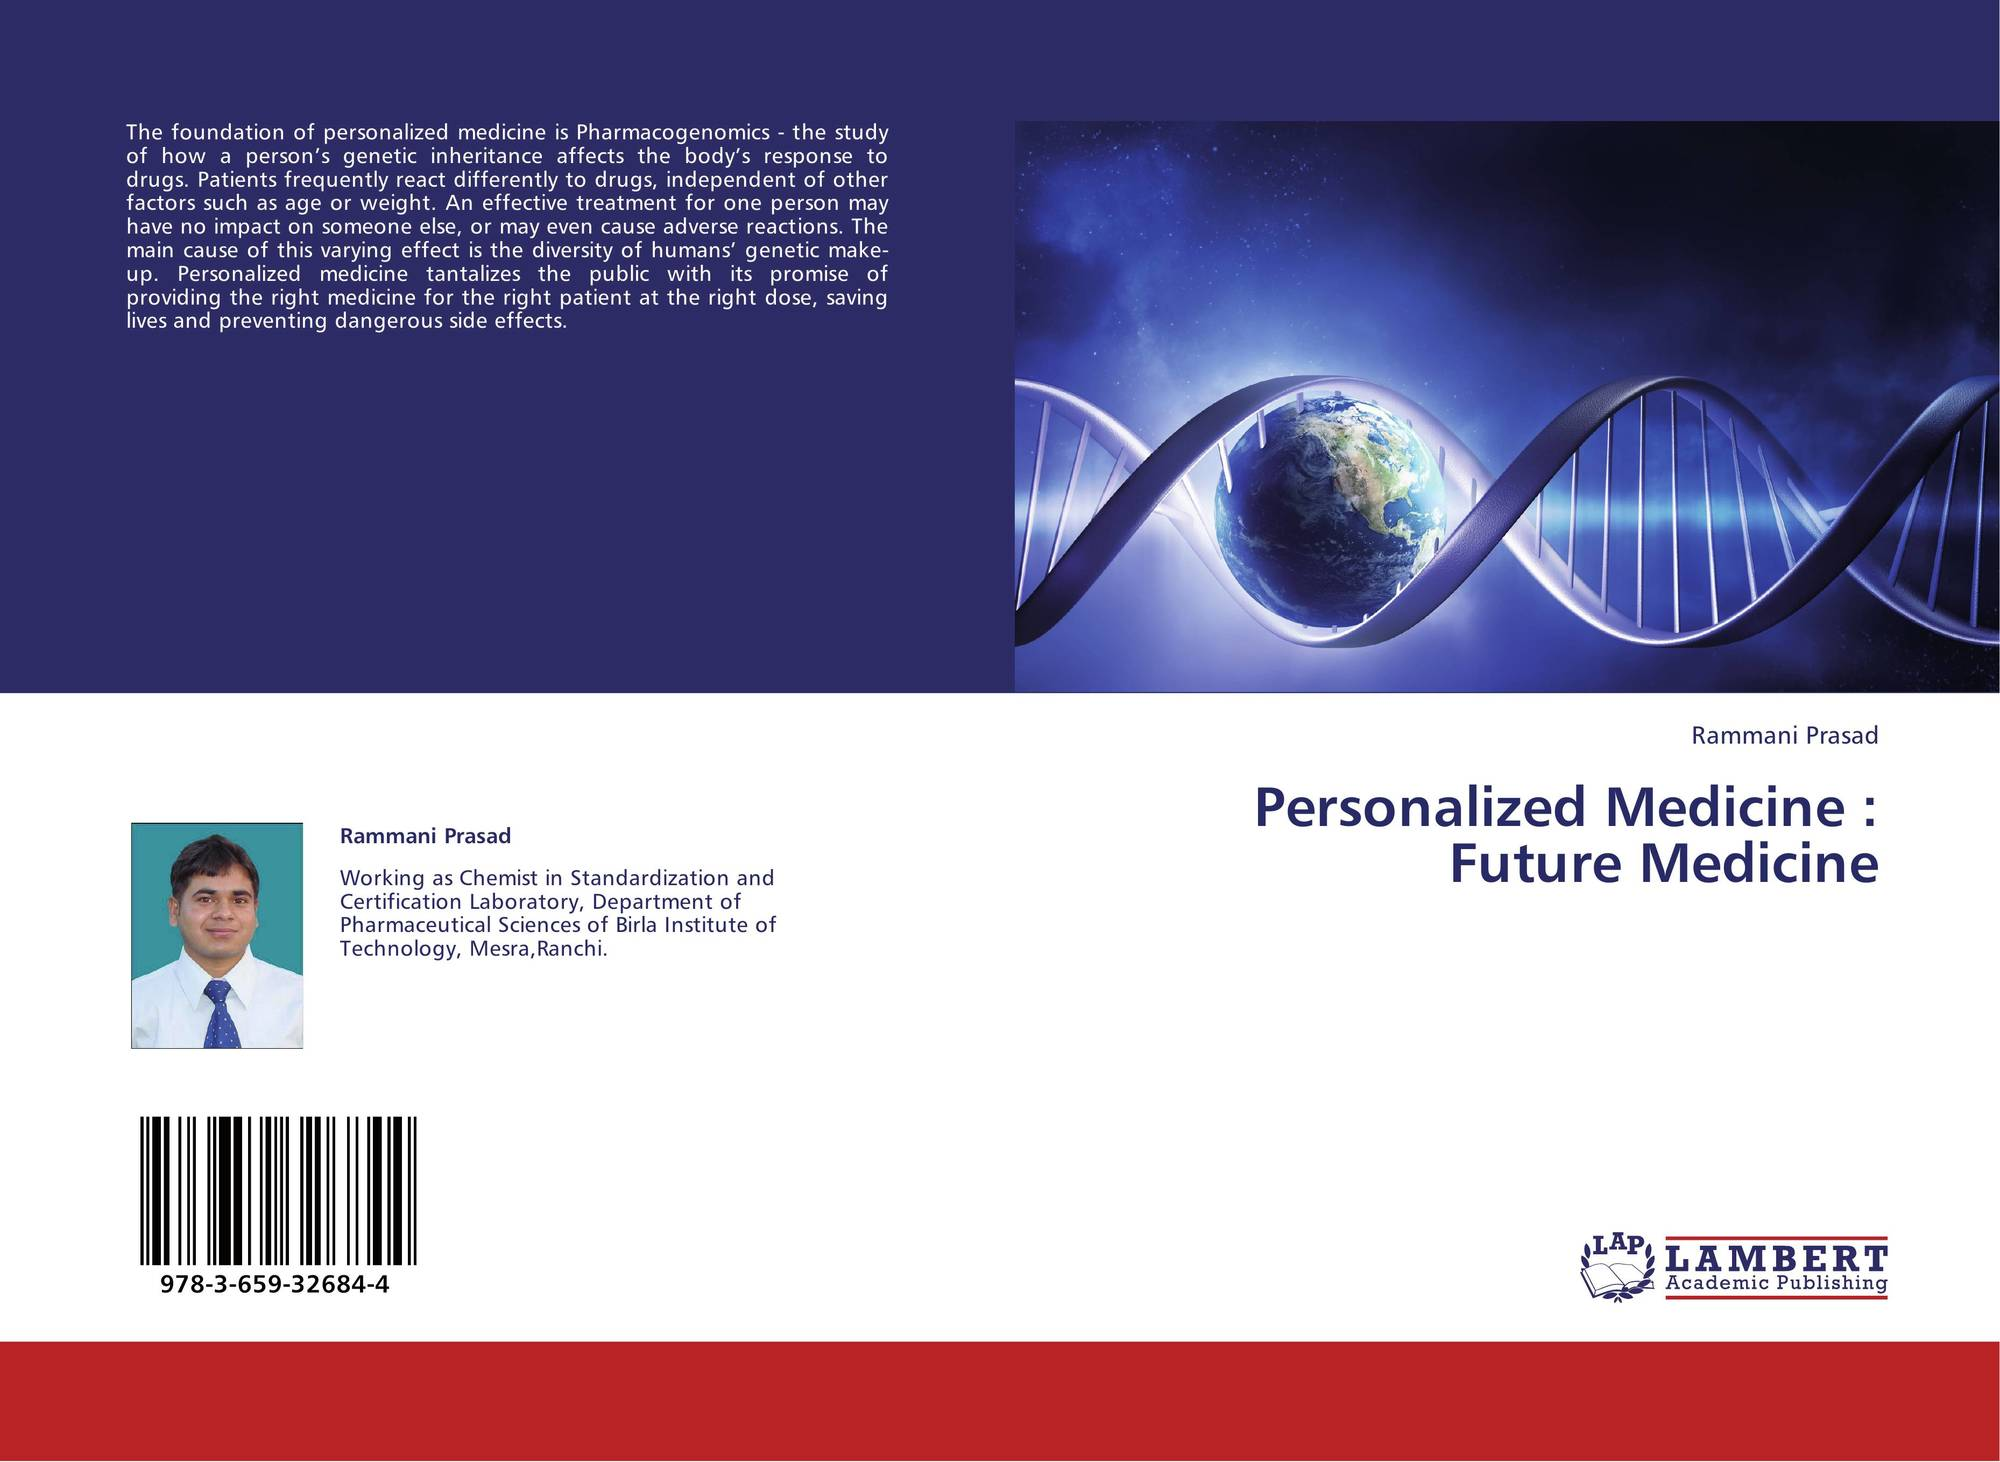 the future of personalized medicine The goal for the future is that personalized medicine will revolutionize patient care in these ways and more every day, researchers at the jackson laboratory study cancer, neurodegenerative disease, bioinformatics, and a variety of other fields with direct implications for the future of personalized medicine.